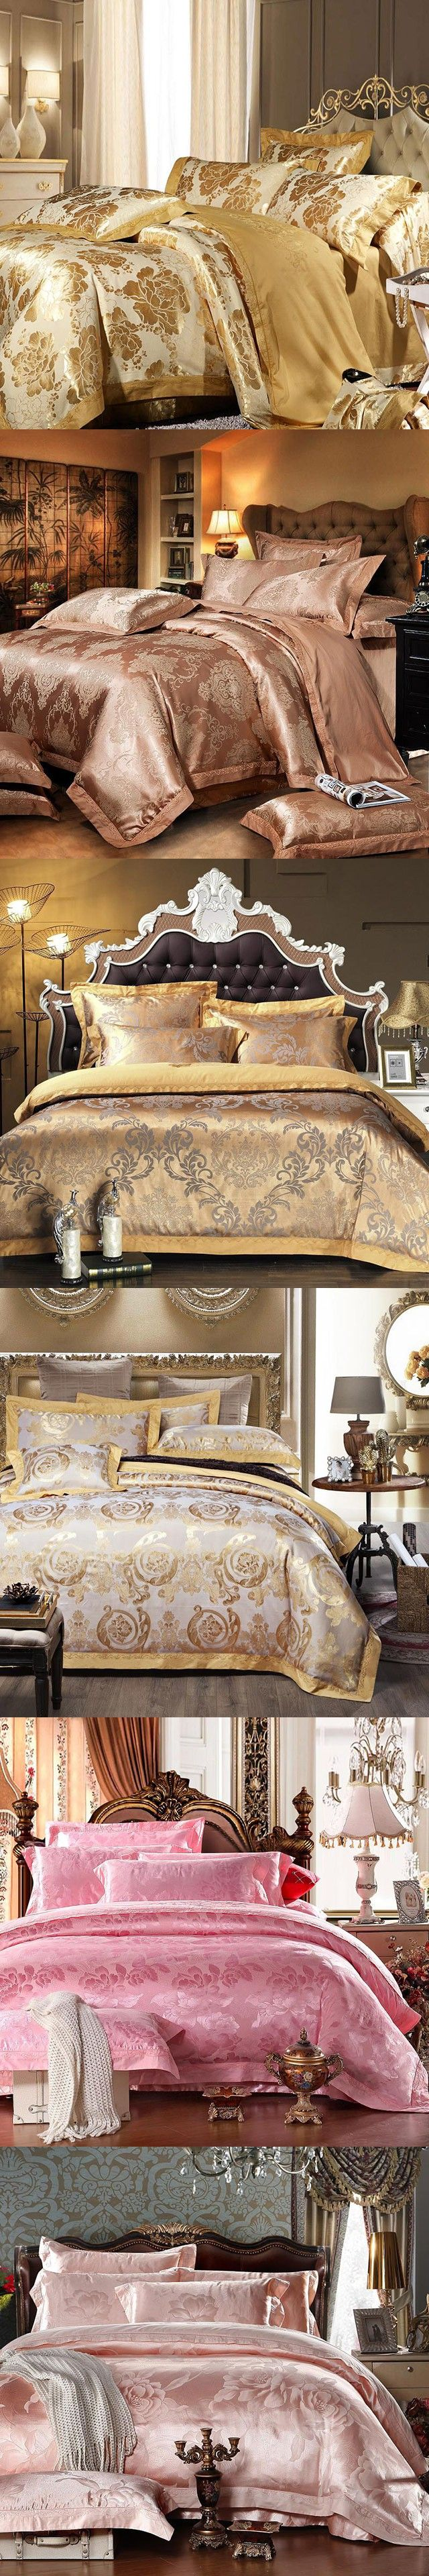 Bed sheets for wedding - Big Sale 50 Off Home Textiles Bedding Set Luxury Wedding Decorative Bed Sheet 4pcs High Quality Bed Linen Duvet Cover